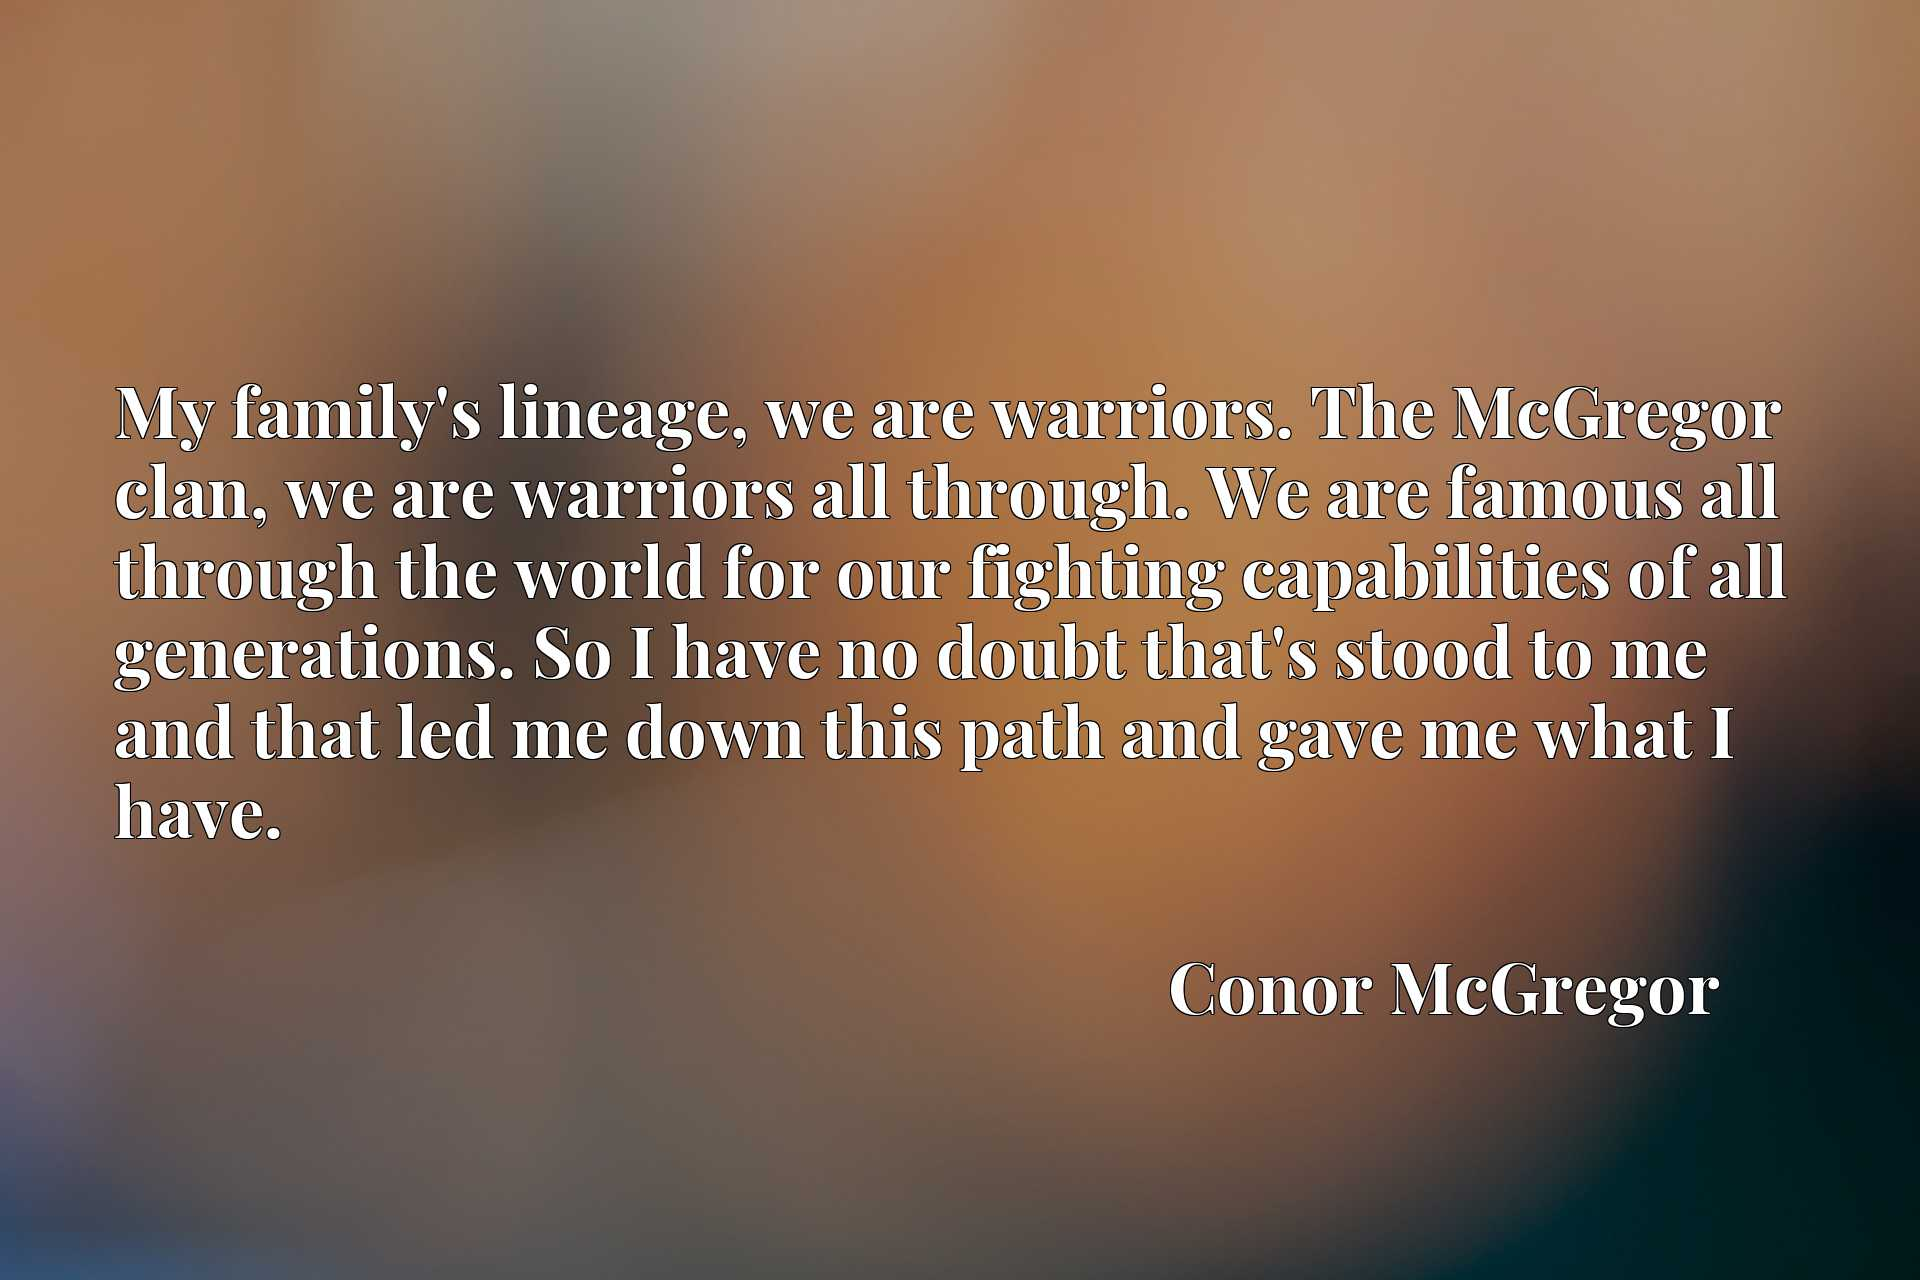 My family's lineage, we are warriors. The McGregor clan, we are warriors all through. We are famous all through the world for our fighting capabilities of all generations. So I have no doubt that's stood to me and that led me down this path and gave me what I have.